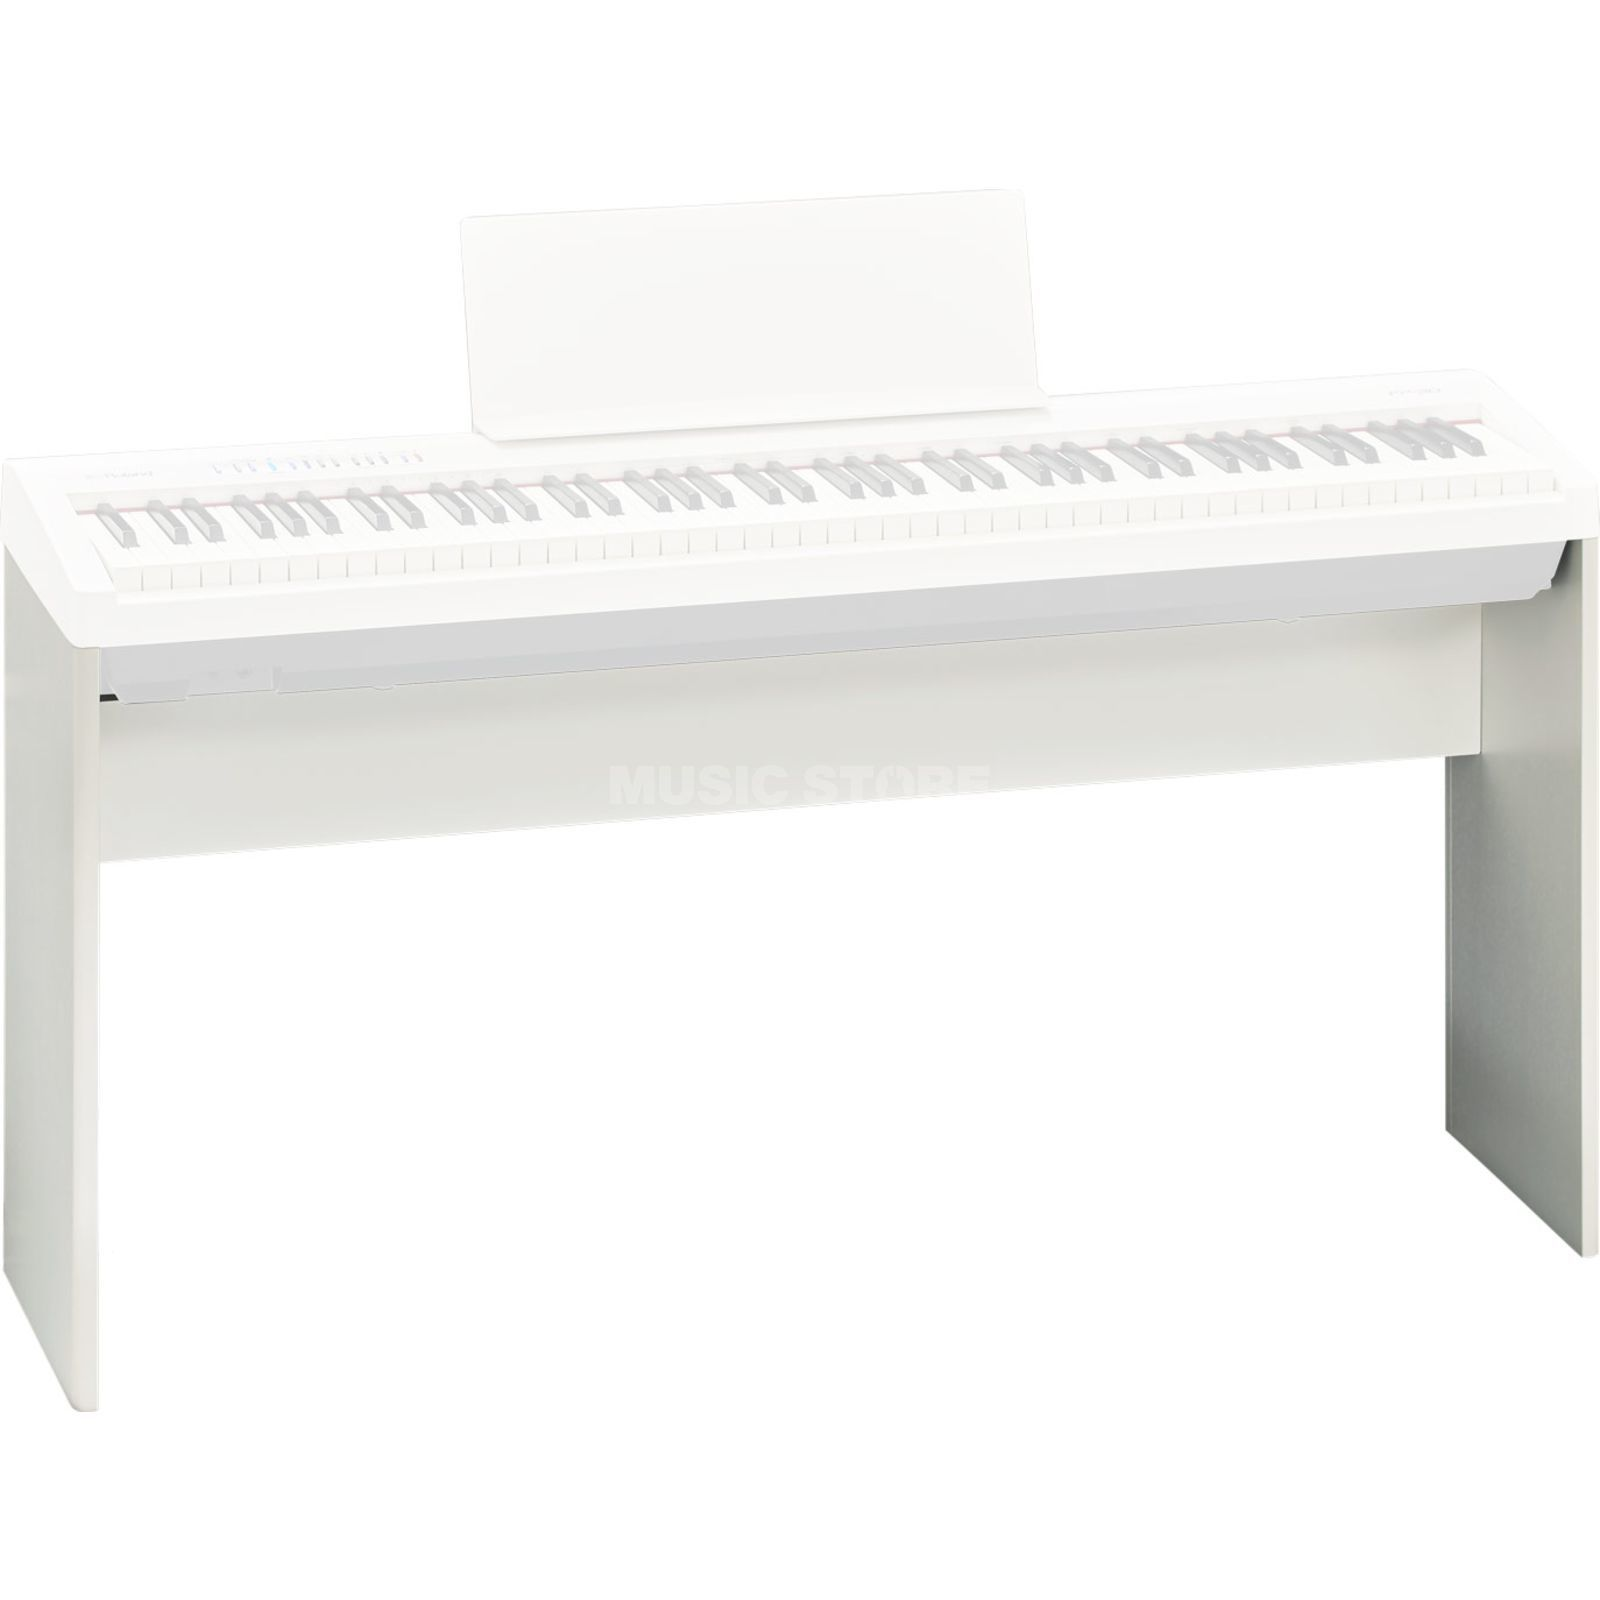 Roland KSC-70 WH Product Image